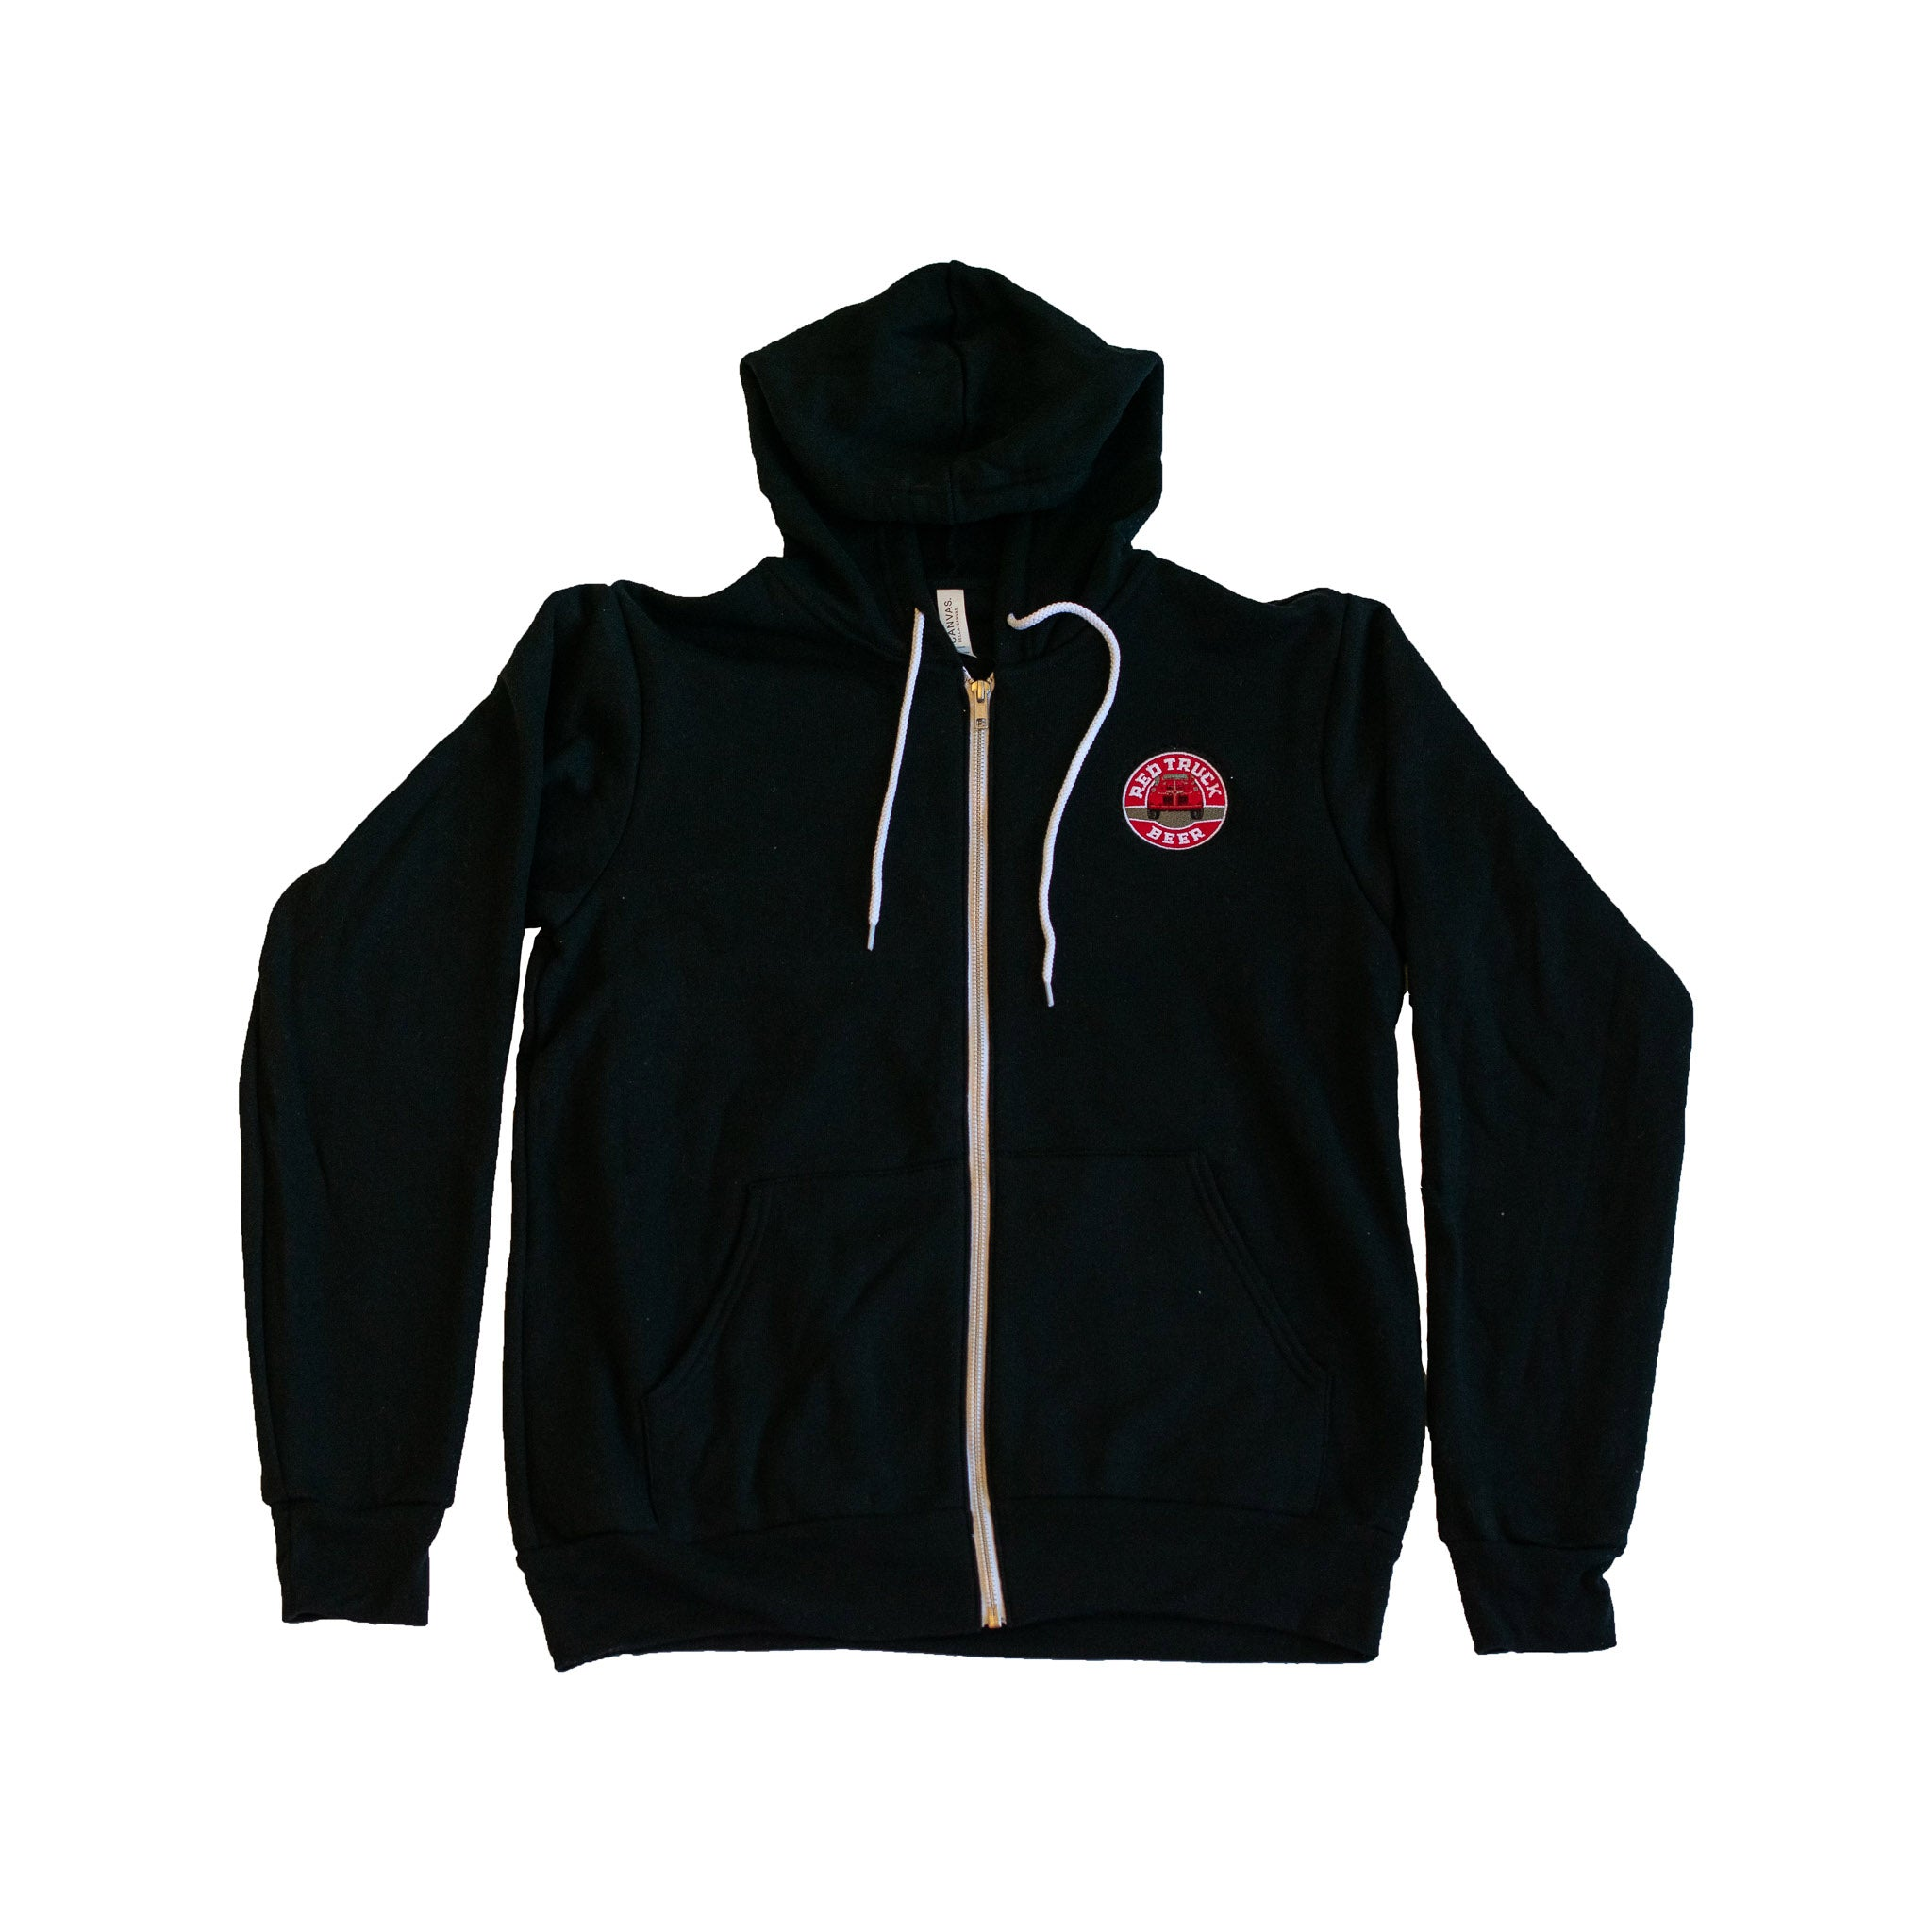 RED TRUCK CLASSIC LOGO HOODIE